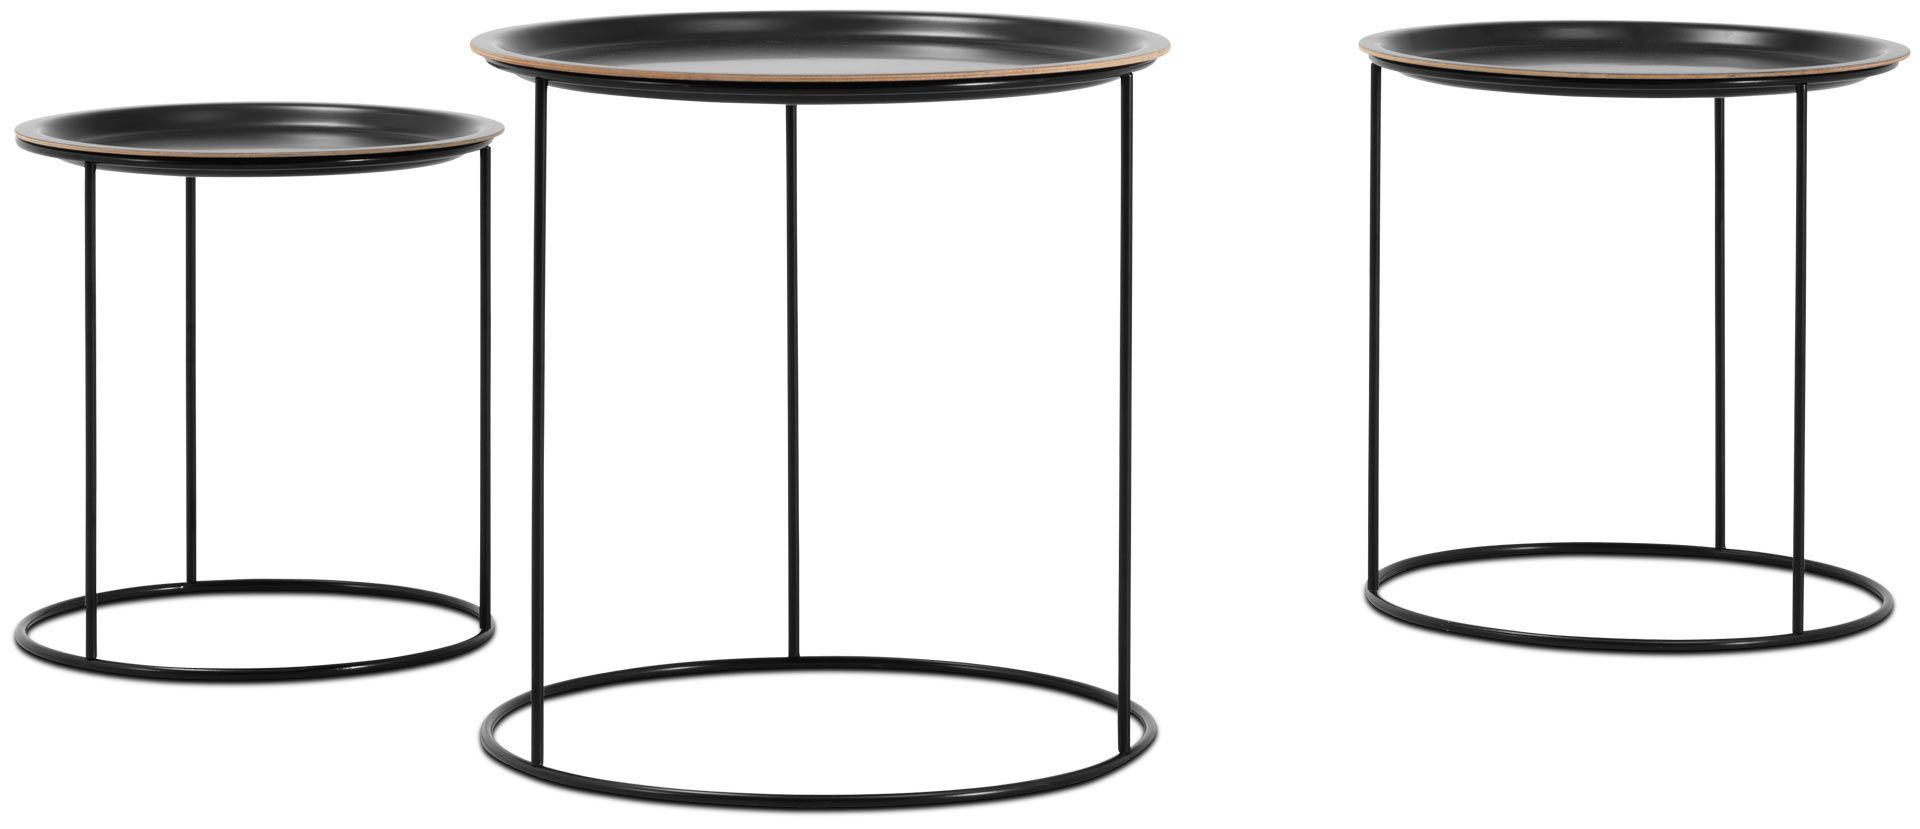 Modern occasional tables quality from boconcept 795 h36xw91 xd91 cm proj - Boconcept table basse ...